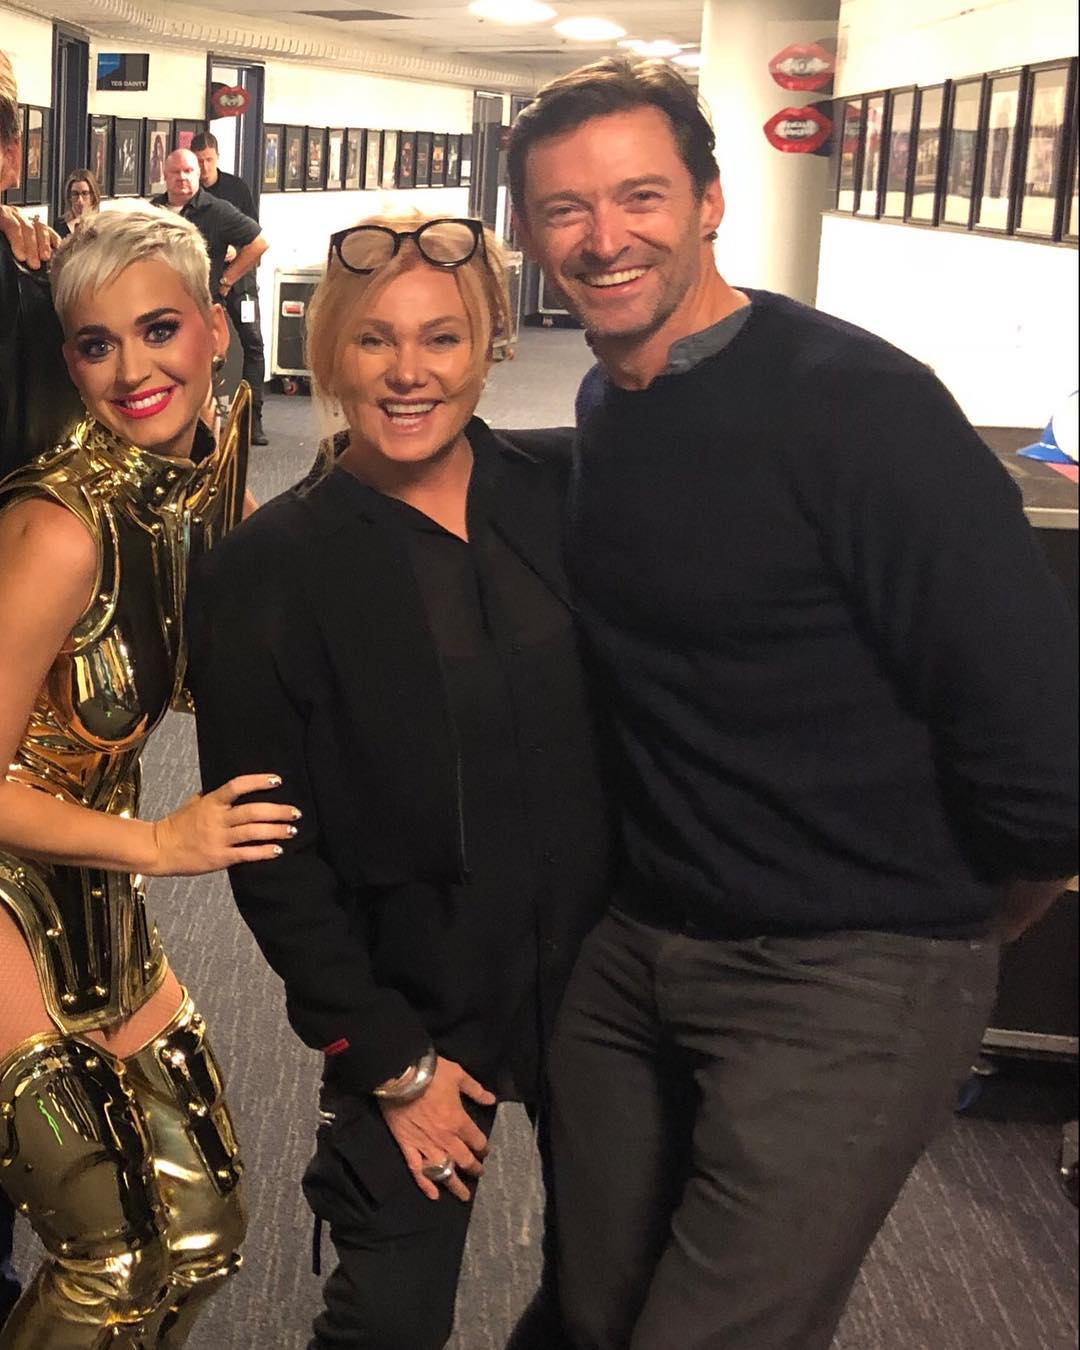 Hugh-Jackman-Hits-Katy-Perry-Concert-And-Shows-Off-His-Superfandom-See-Their-Cute-Photo